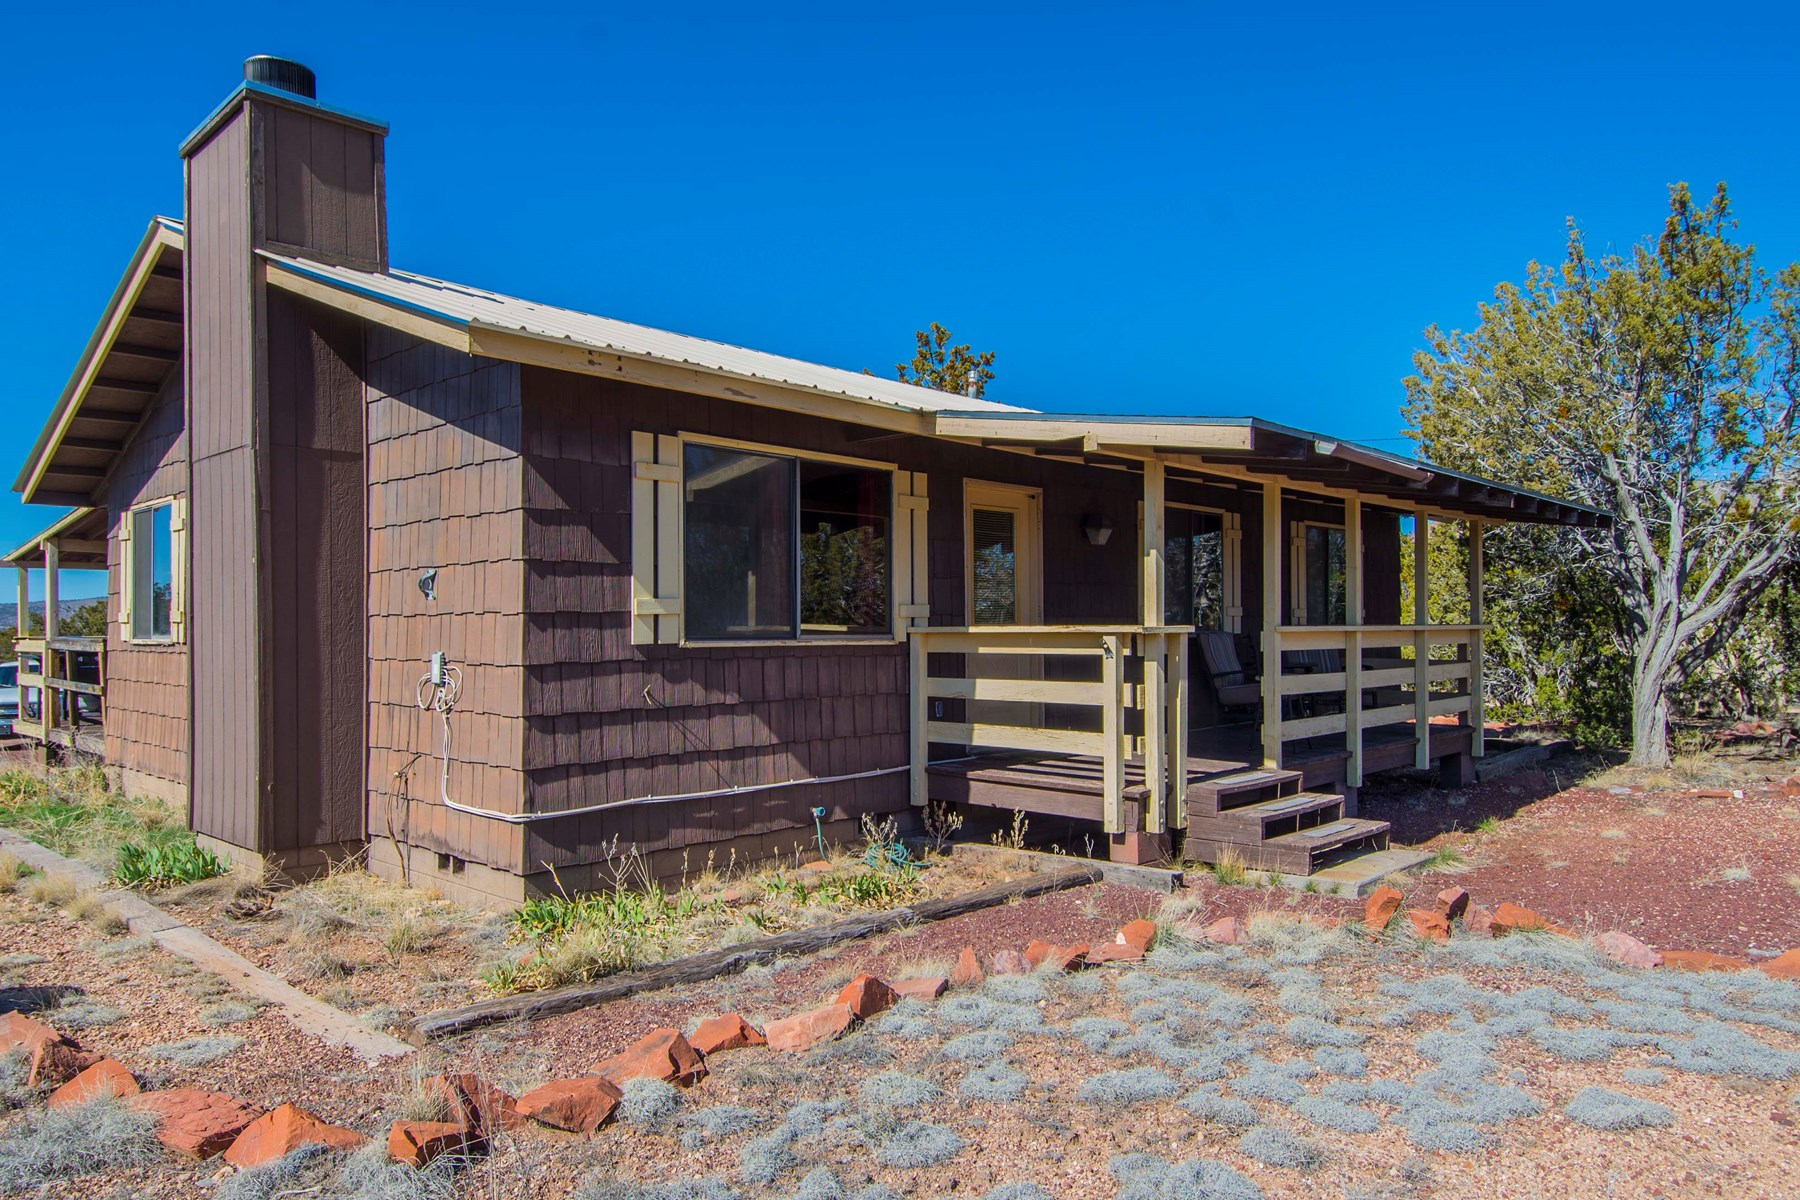 Country Cabin for Sale in Seligman Arizona